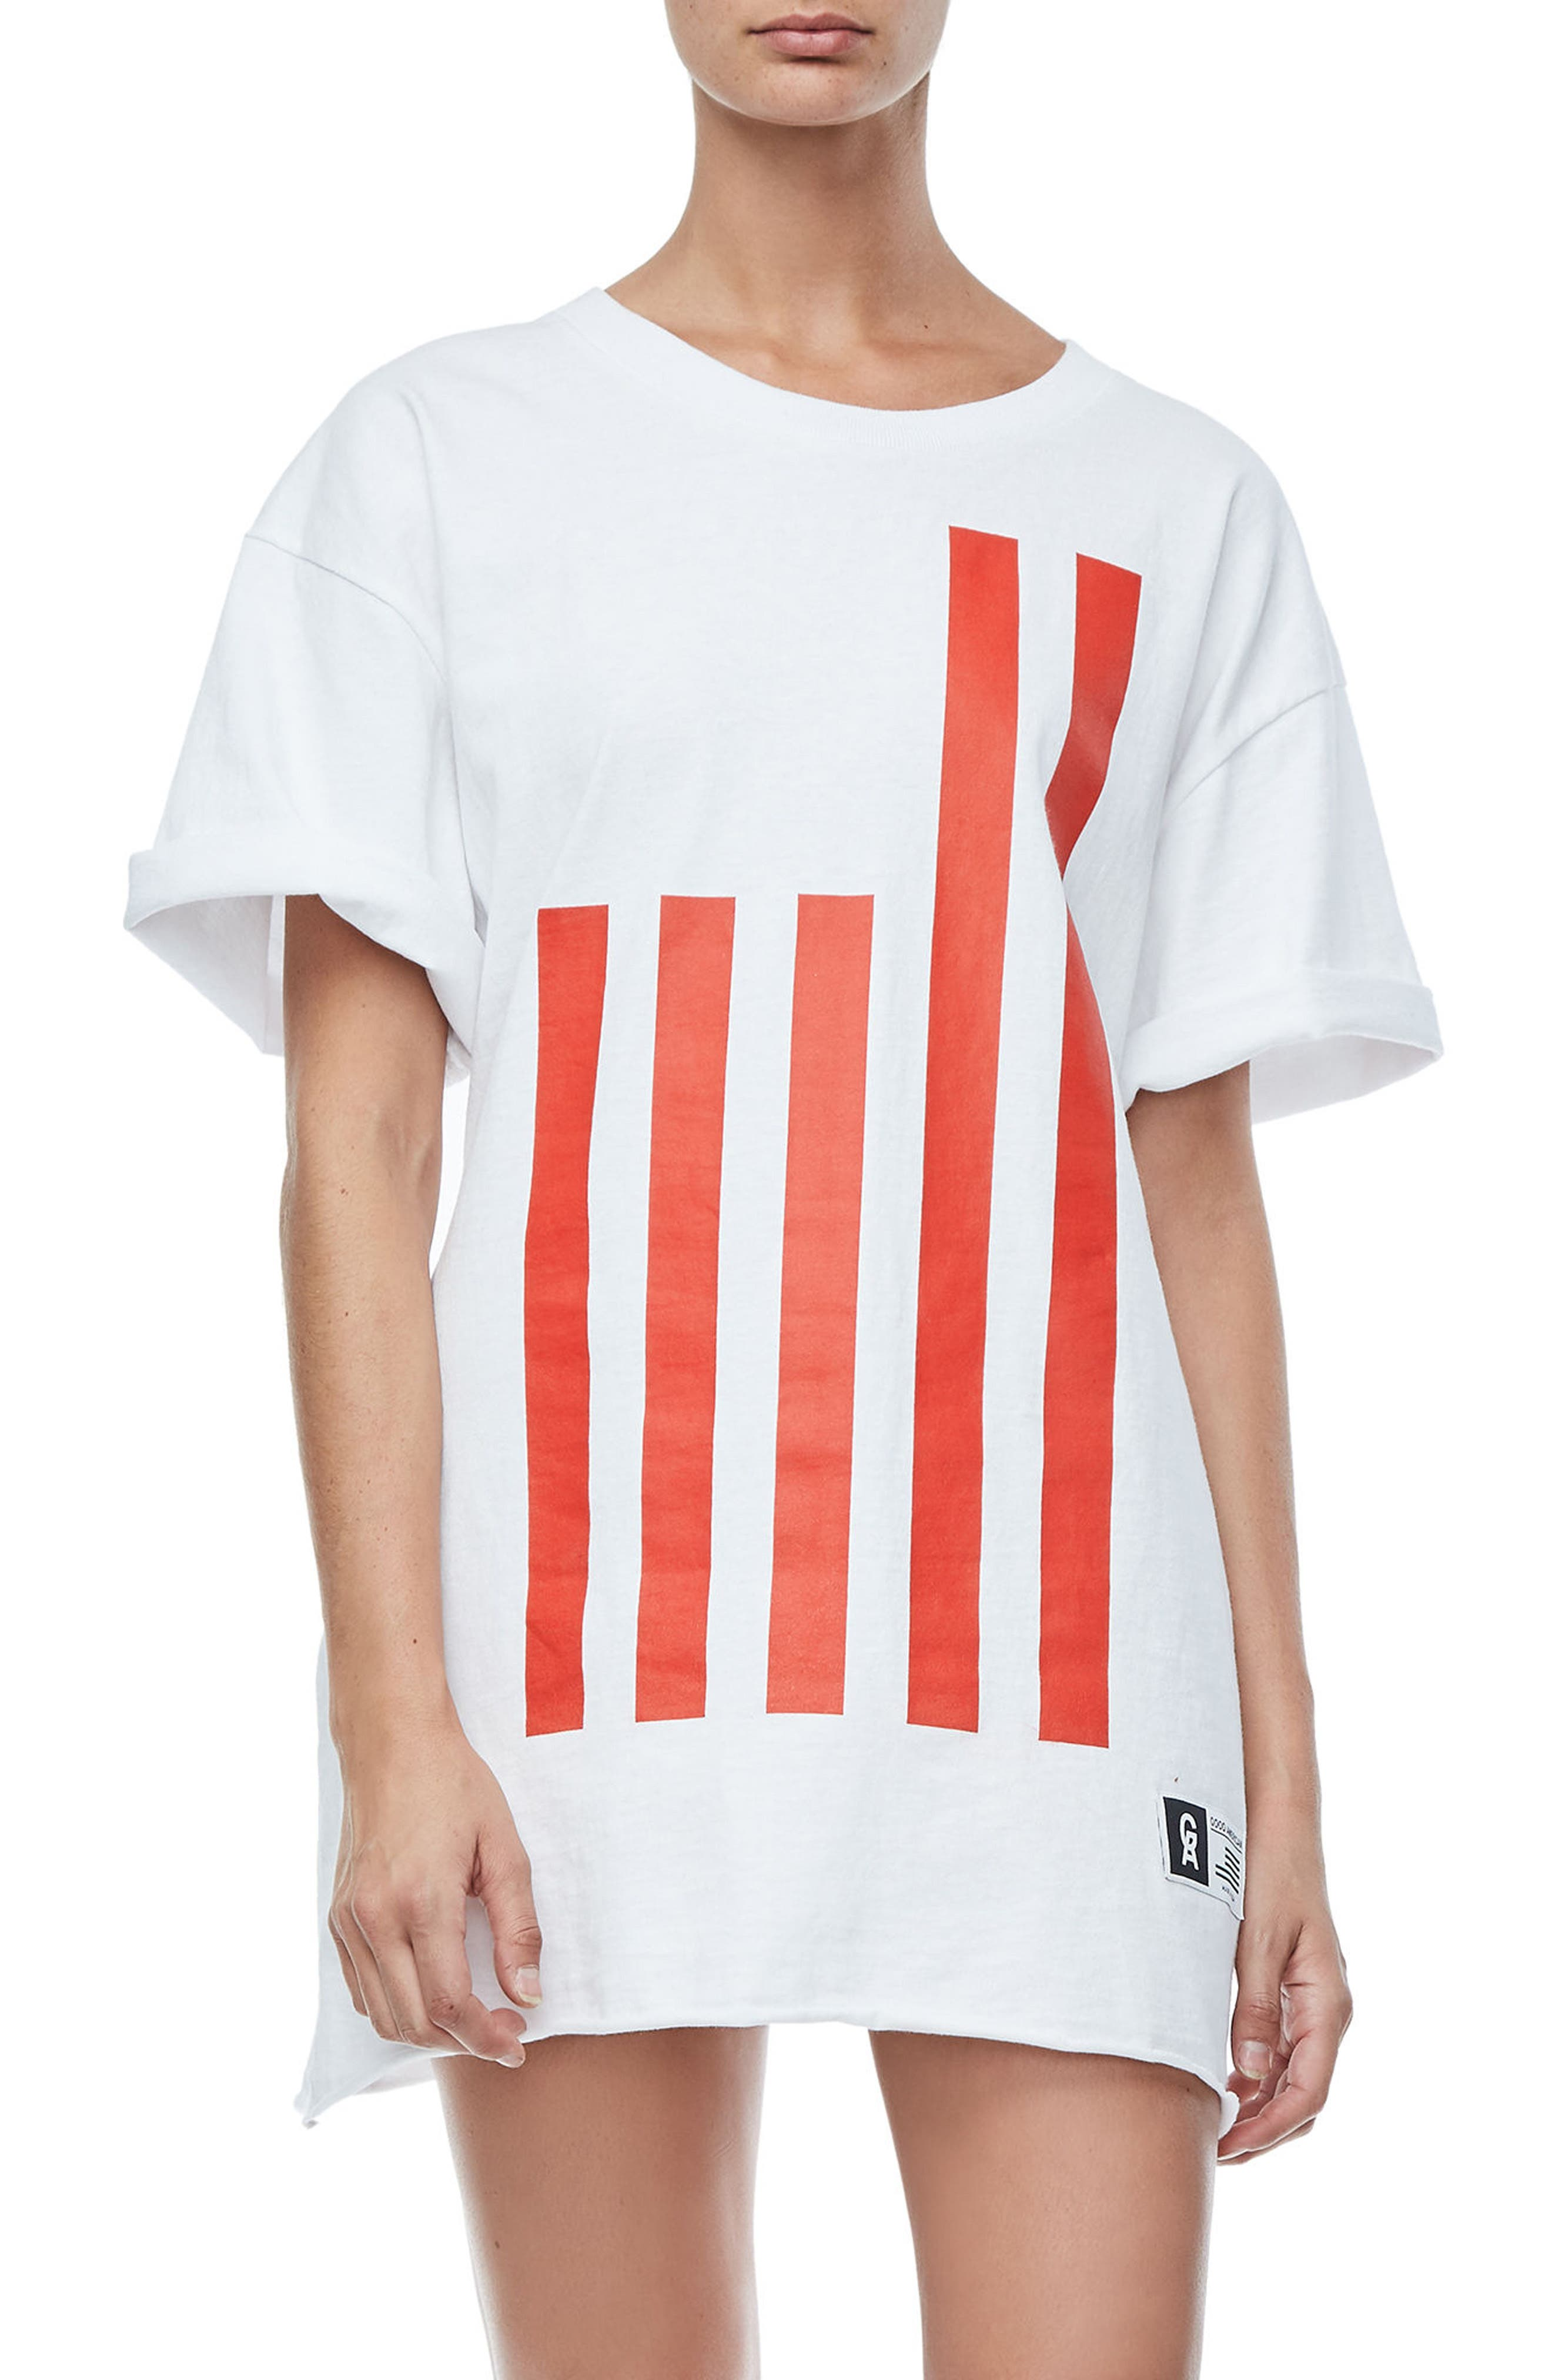 Goodies Graphic Oversize Tee,                         Main,                         color, White001